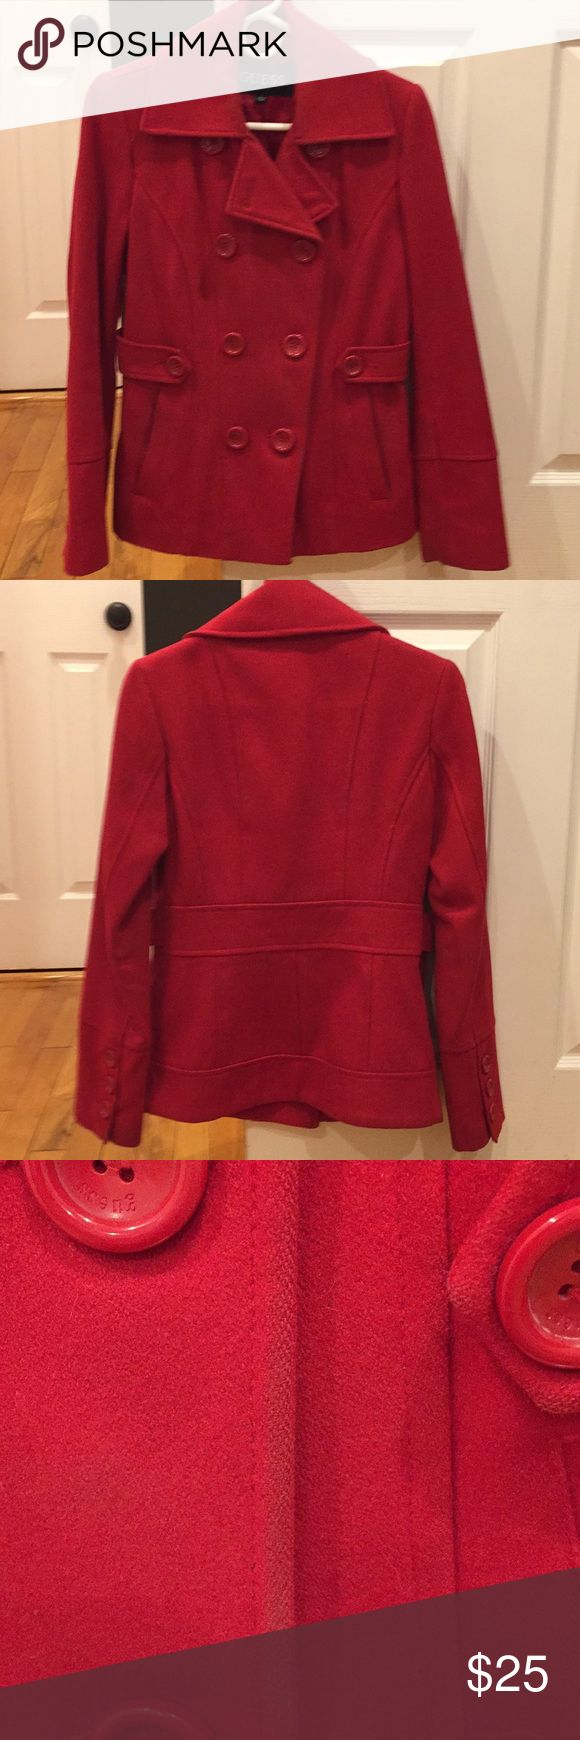 Red Pea Coat Cute, fitted, red pea coat. Short in length just comes down to the behind. Good condition, normal wear, no tears. Purchased at Bloomingdales. Guess Jackets & Coats Pea Coats